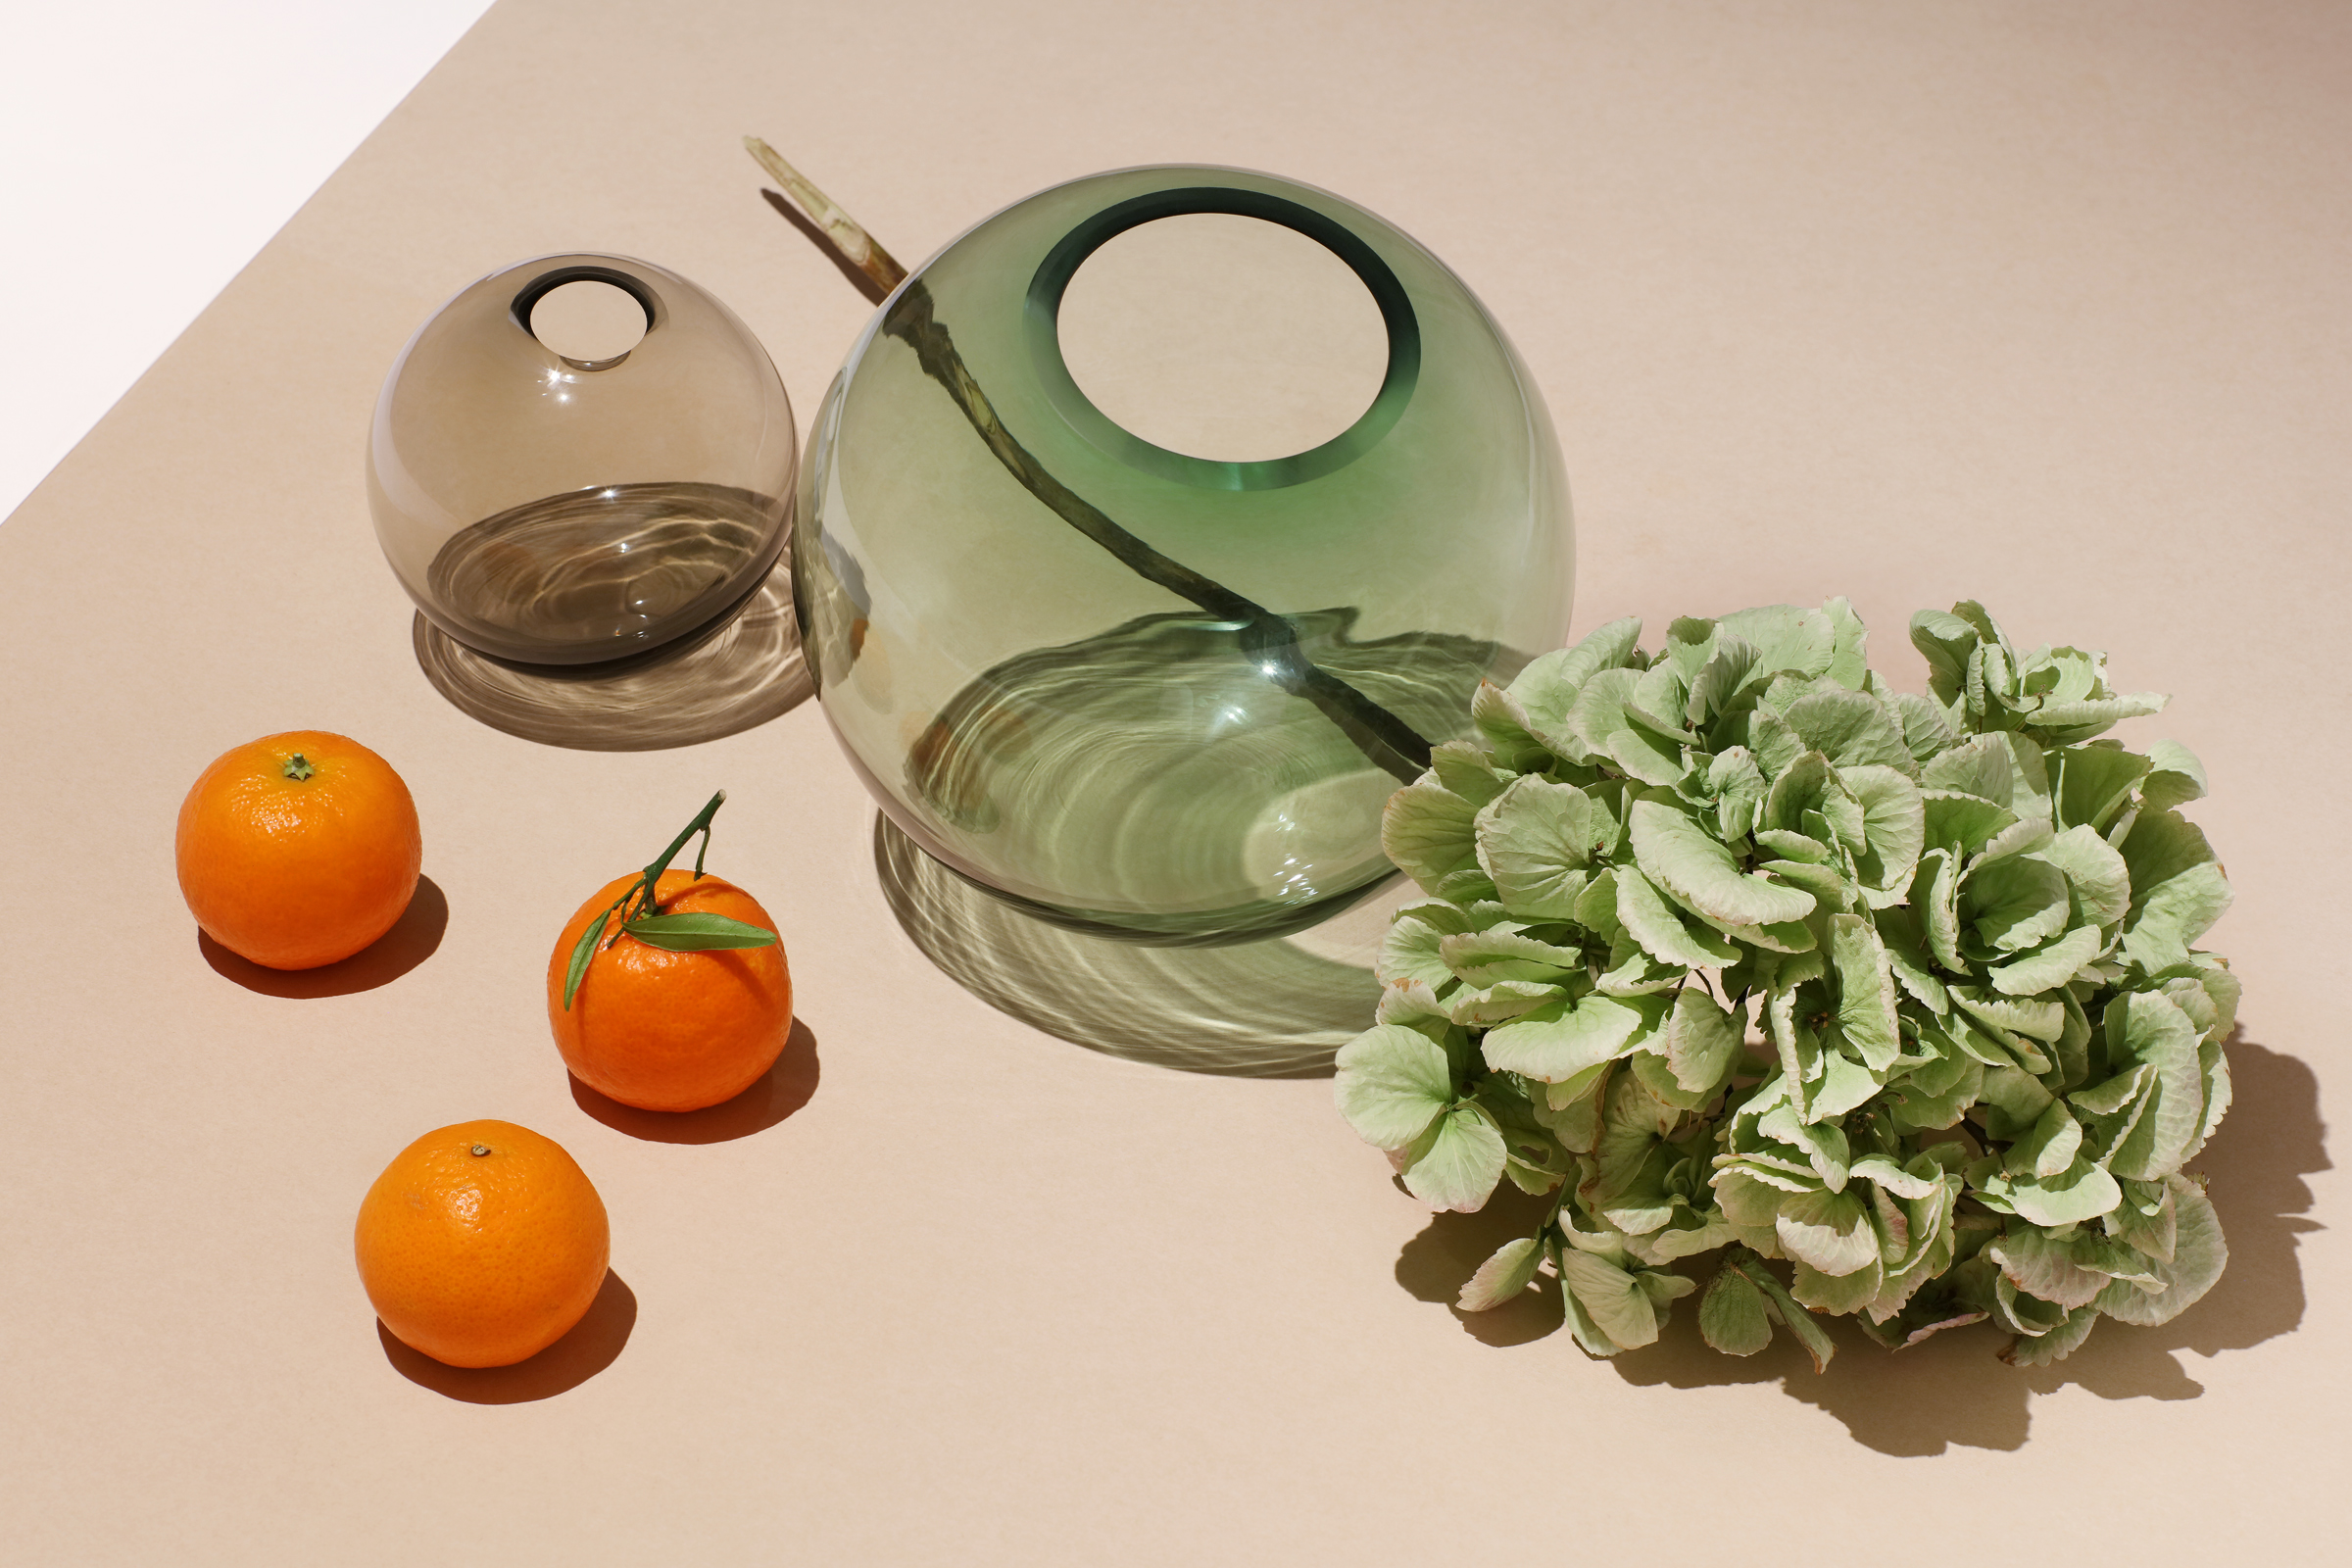 Roberto Badin Le Bon Marché_Holiday_Thomas Treuhaft_Still Life_Product_Photography 2